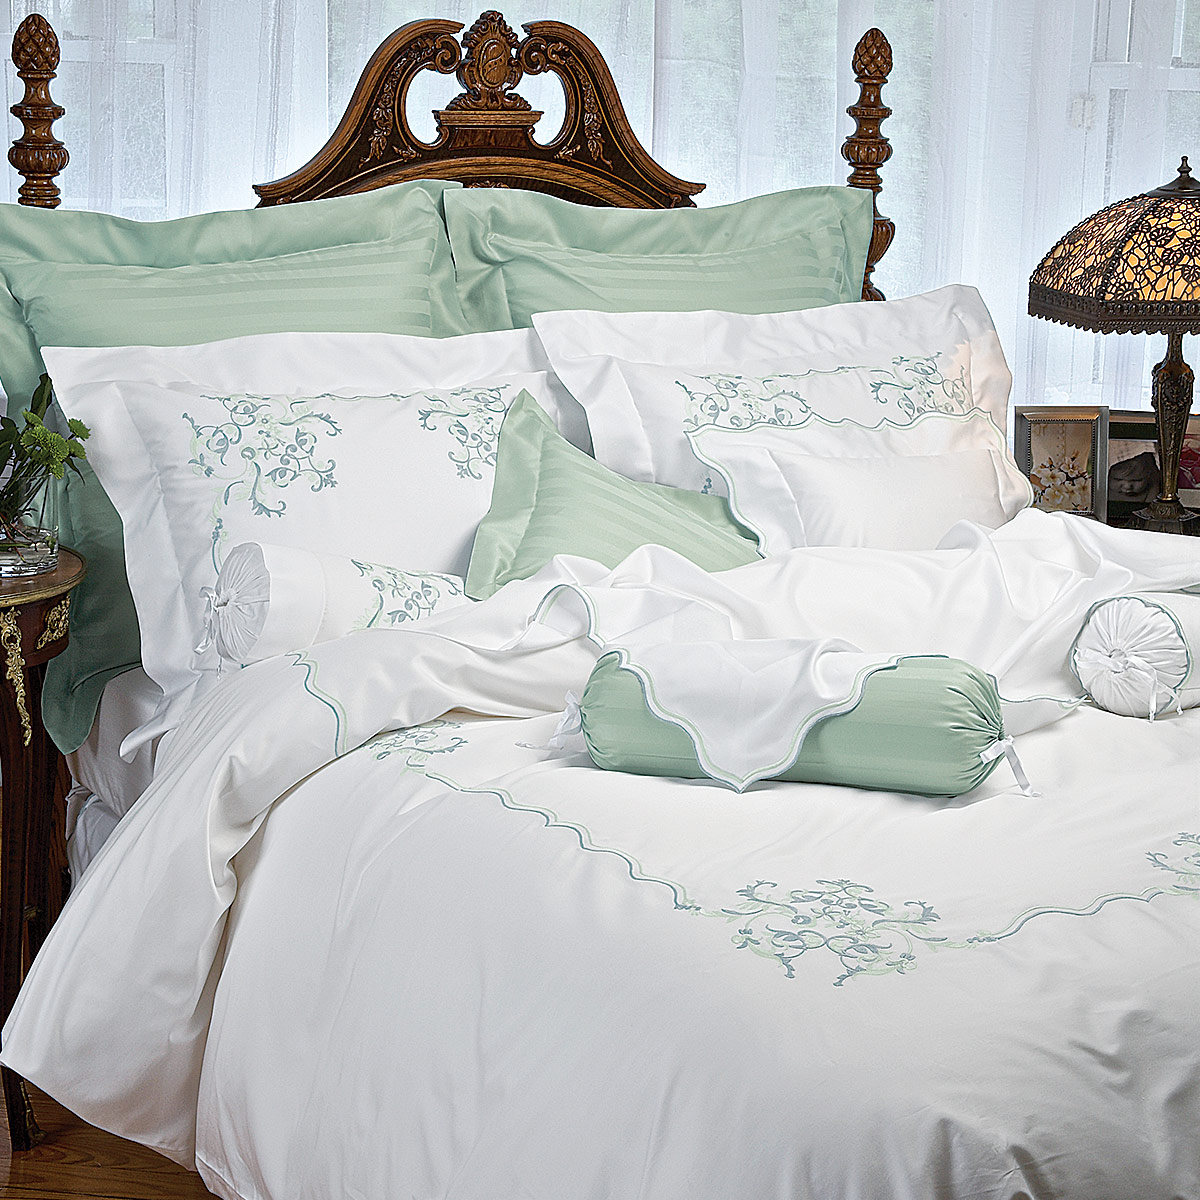 Tuscany Fine Bed Linens Luxury Bedding Italian Bed